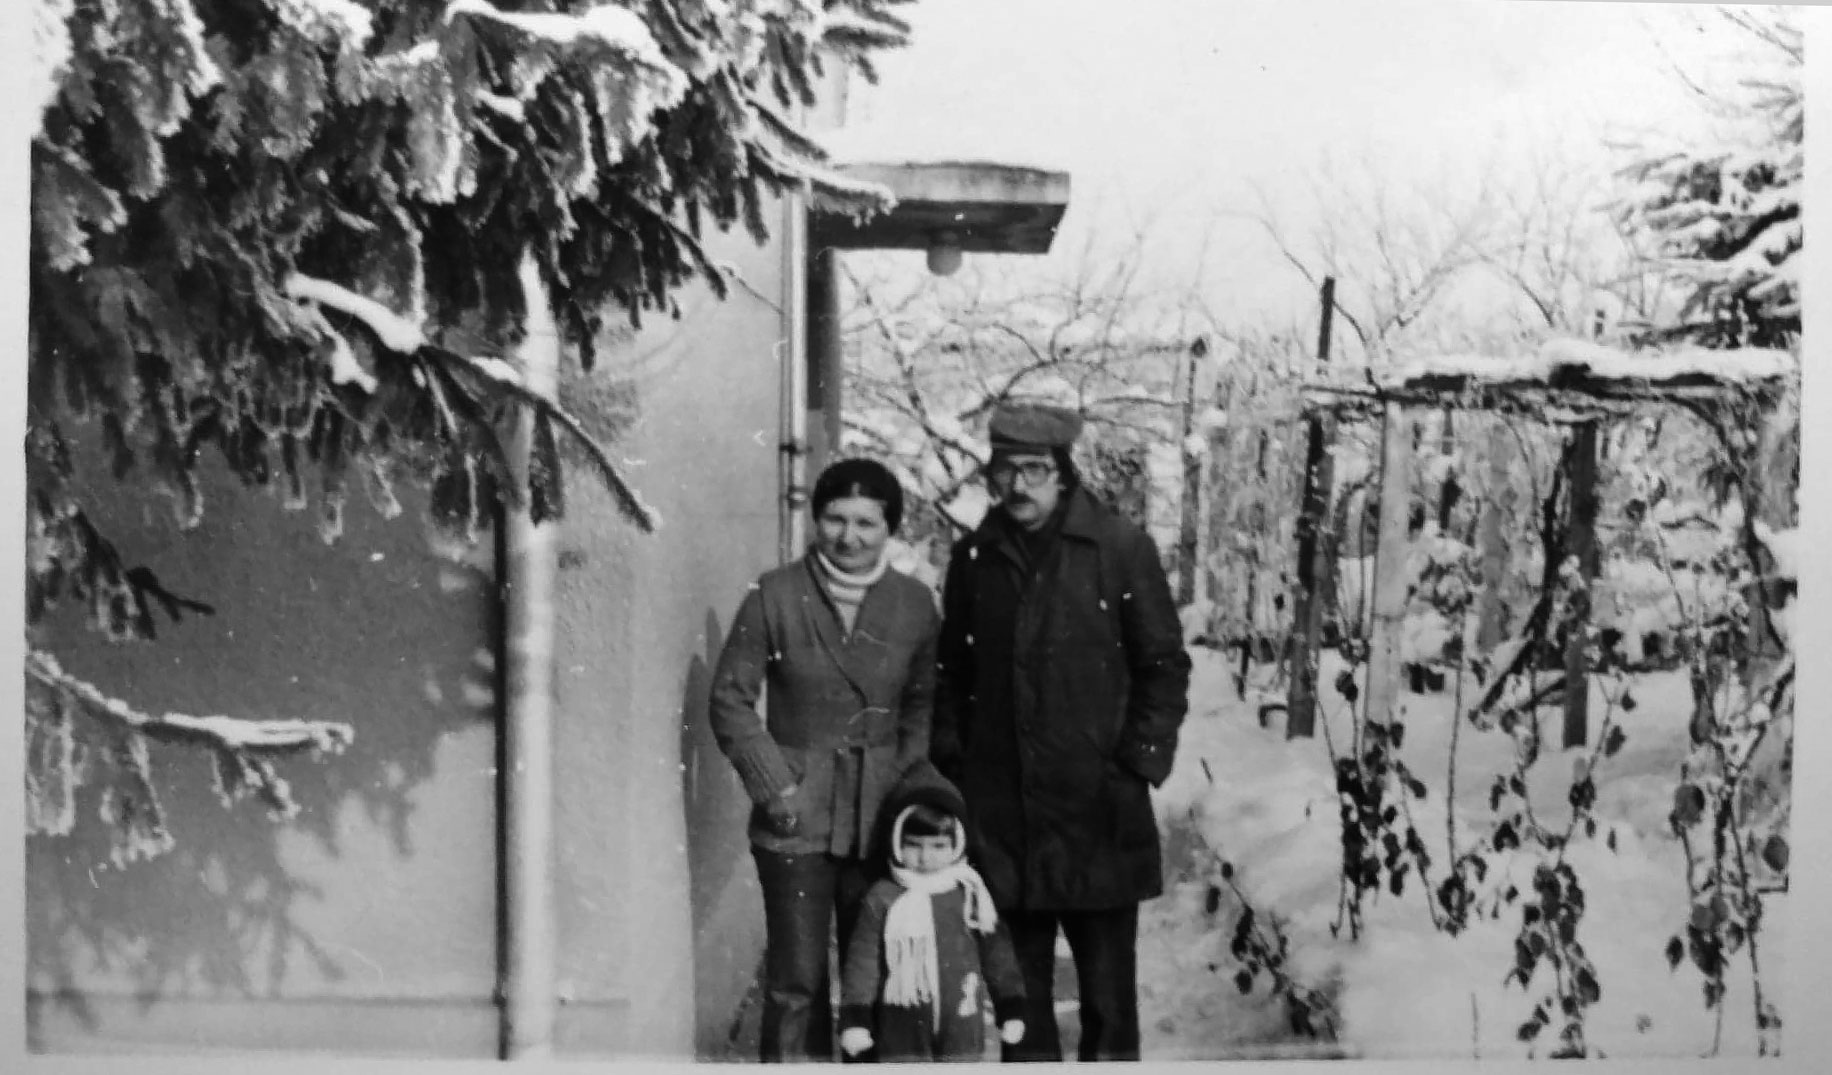 black and white image of three people in front of a building. lots of snow on the ground and on the tree branches.